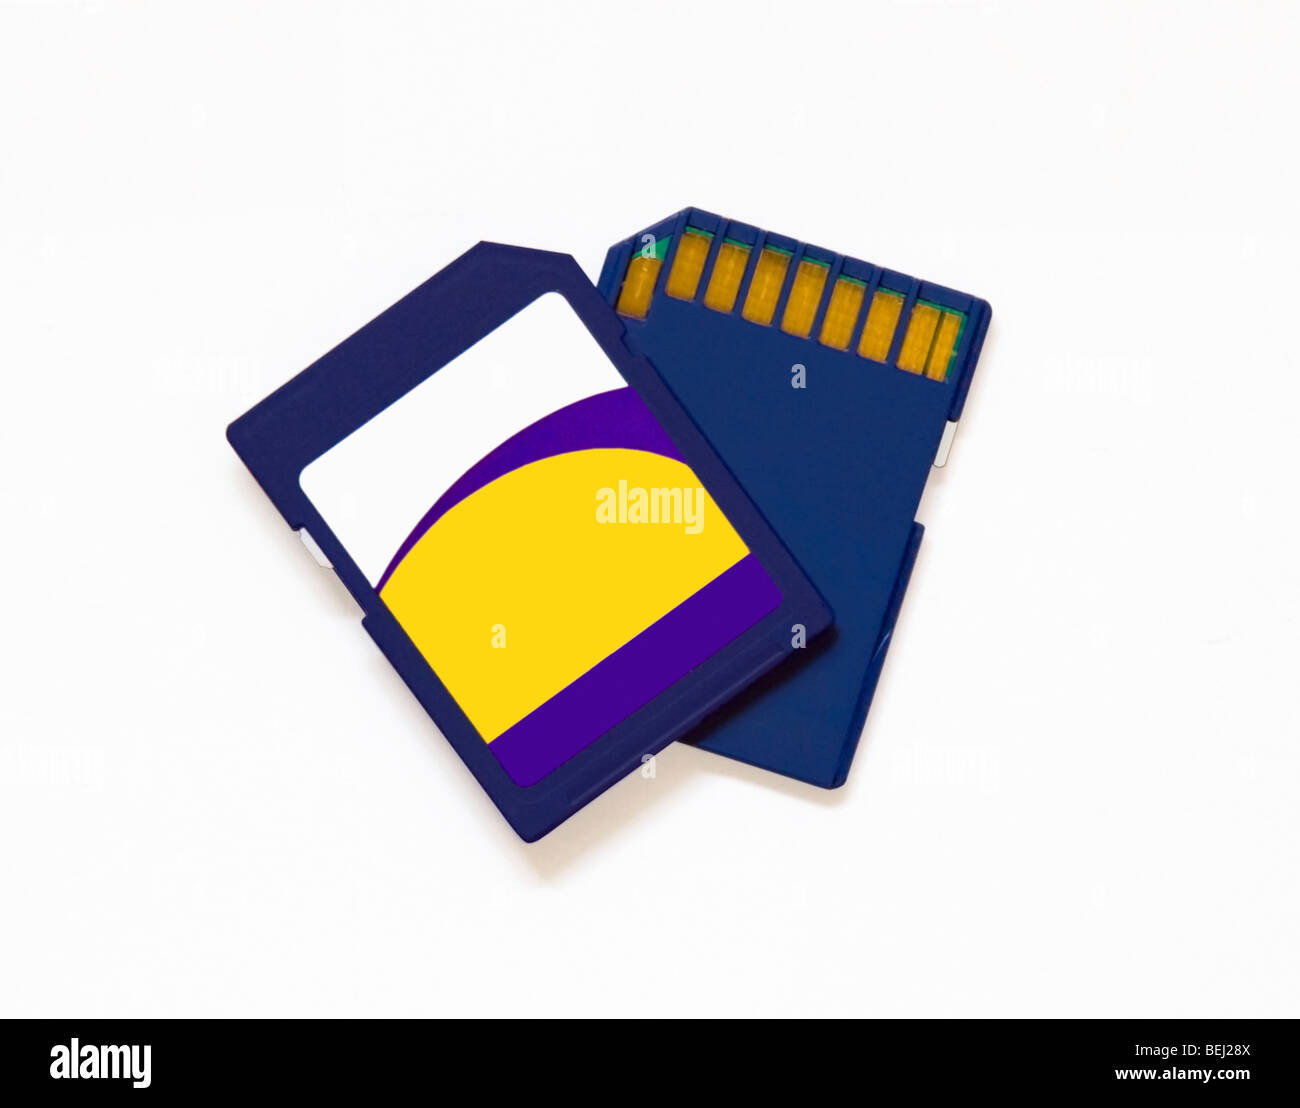 2 digital camera SD cards - Stock Image